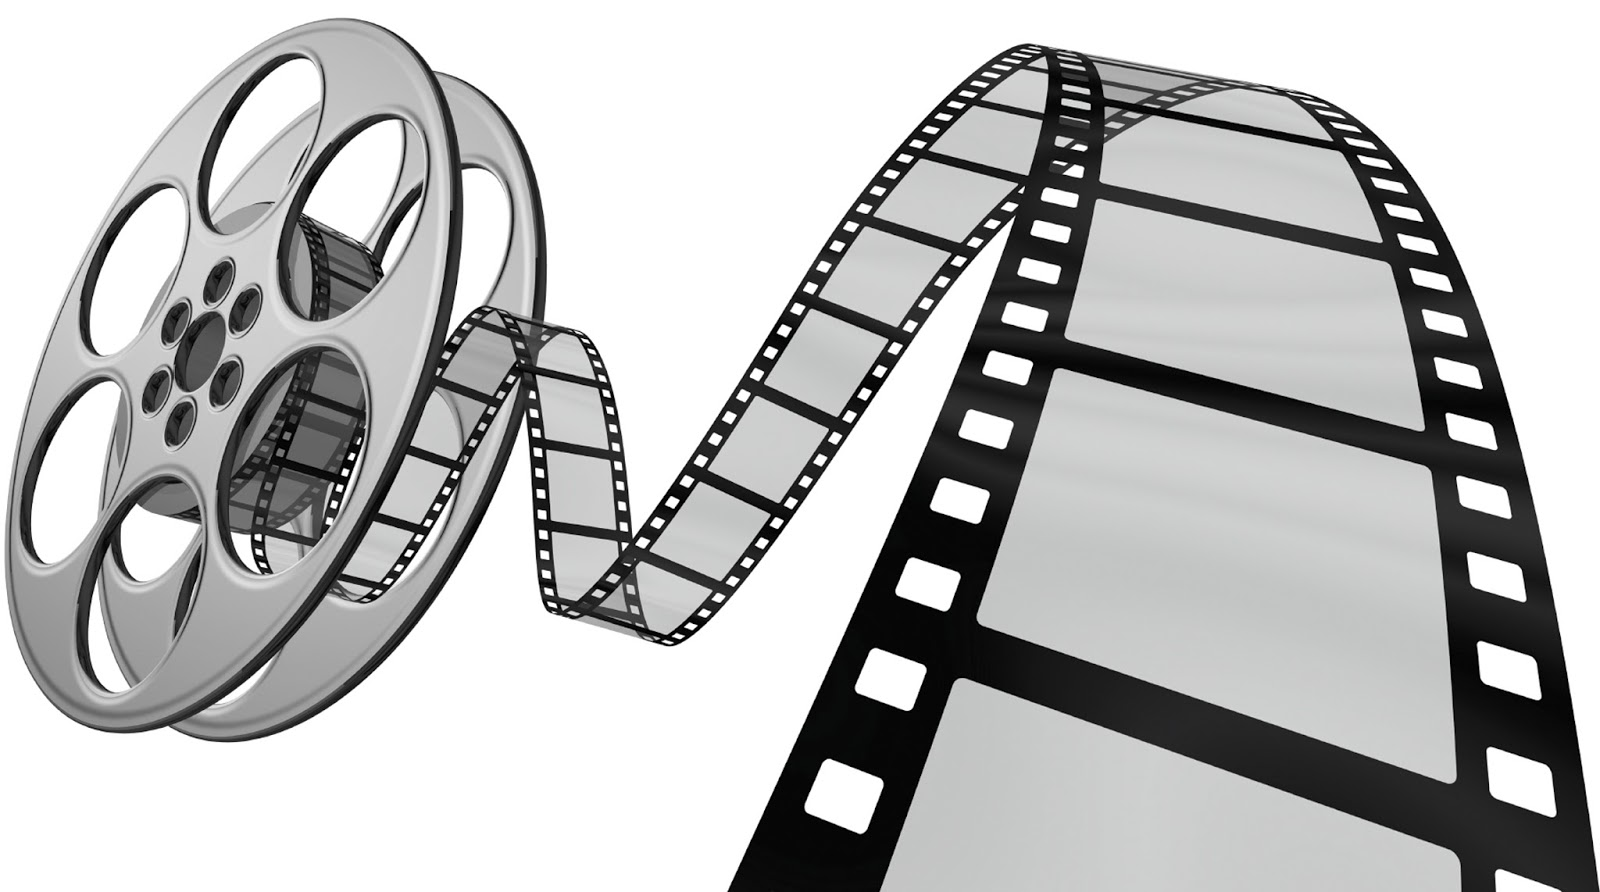 hight resolution of 1600x892 documentary clipart